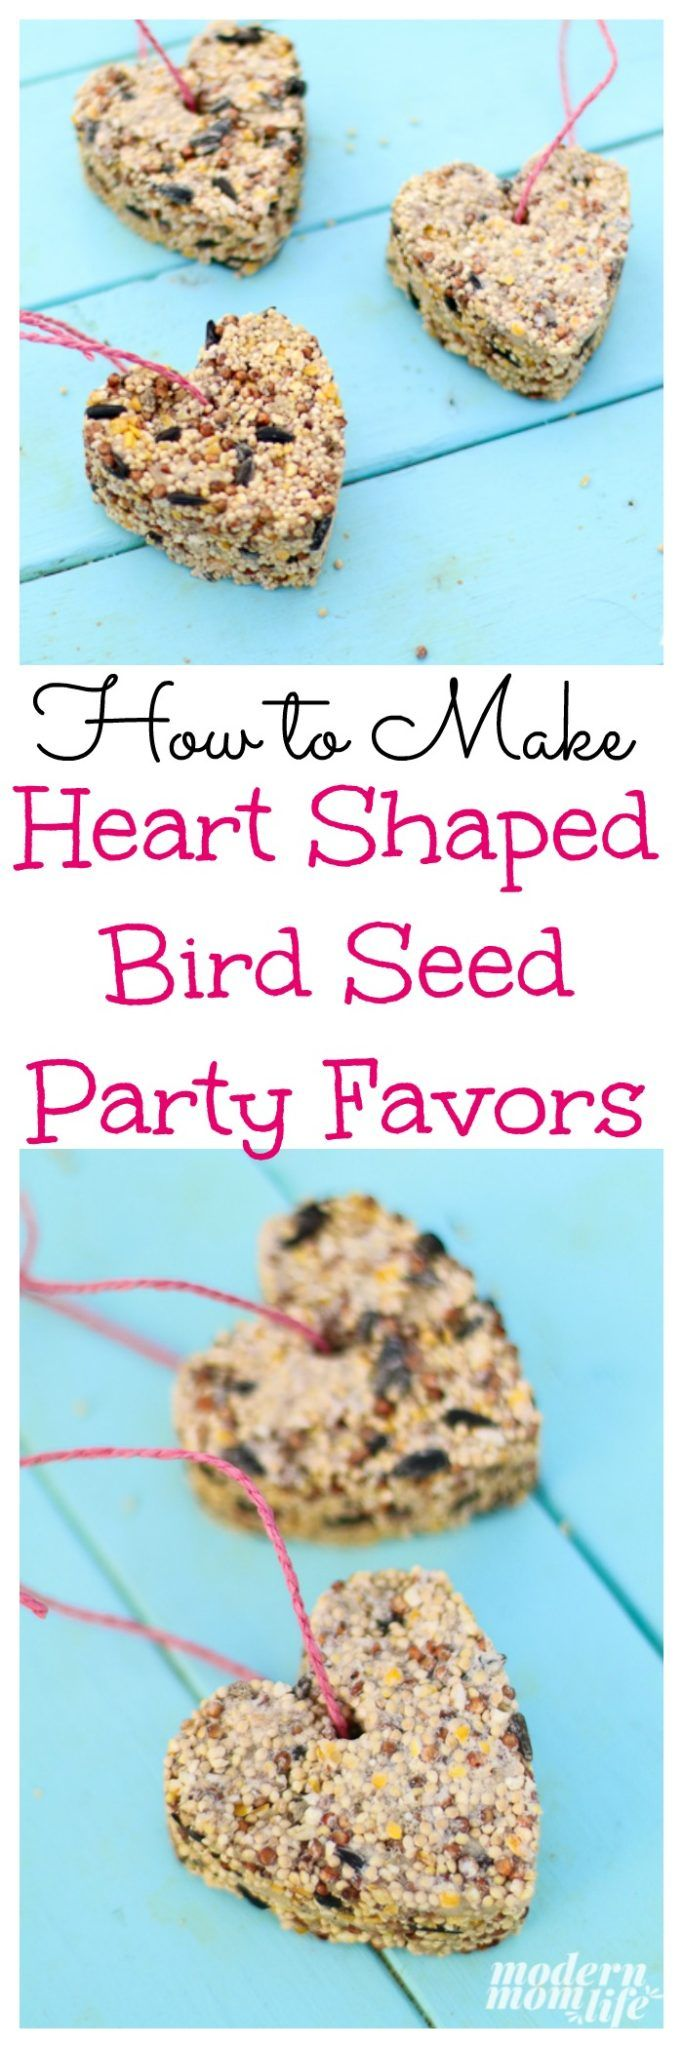 How to Make Valentine's Day Heart Shaped Bird Seed Favors.  via @amodernmomlife